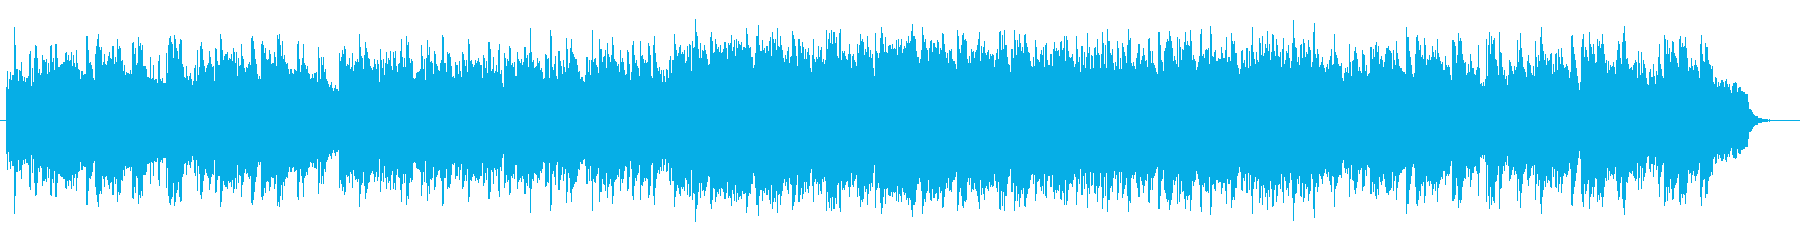 Peaceful piano relaxation music's reproduced waveform